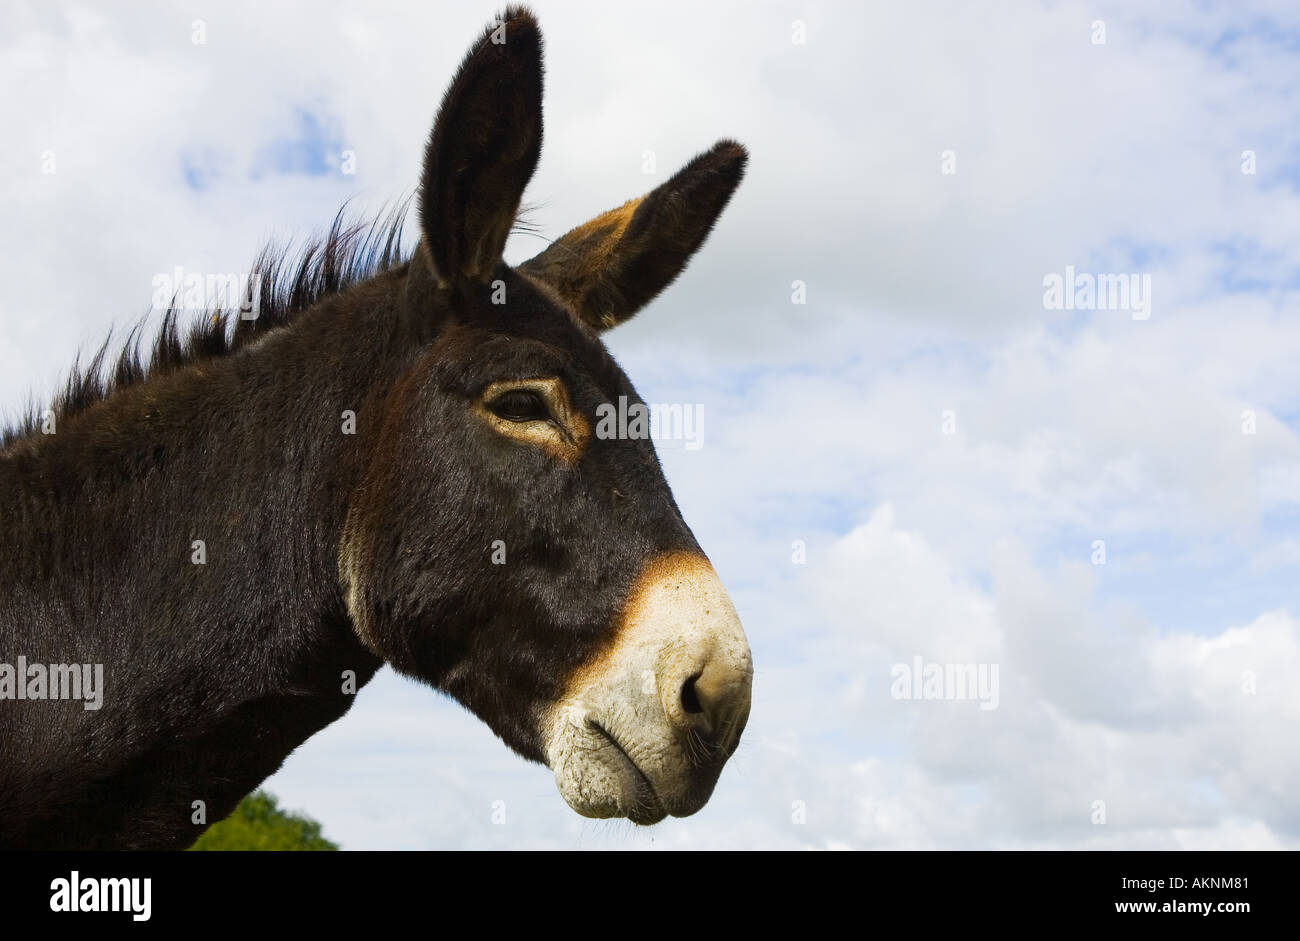 Donkey Normandy France - Stock Image